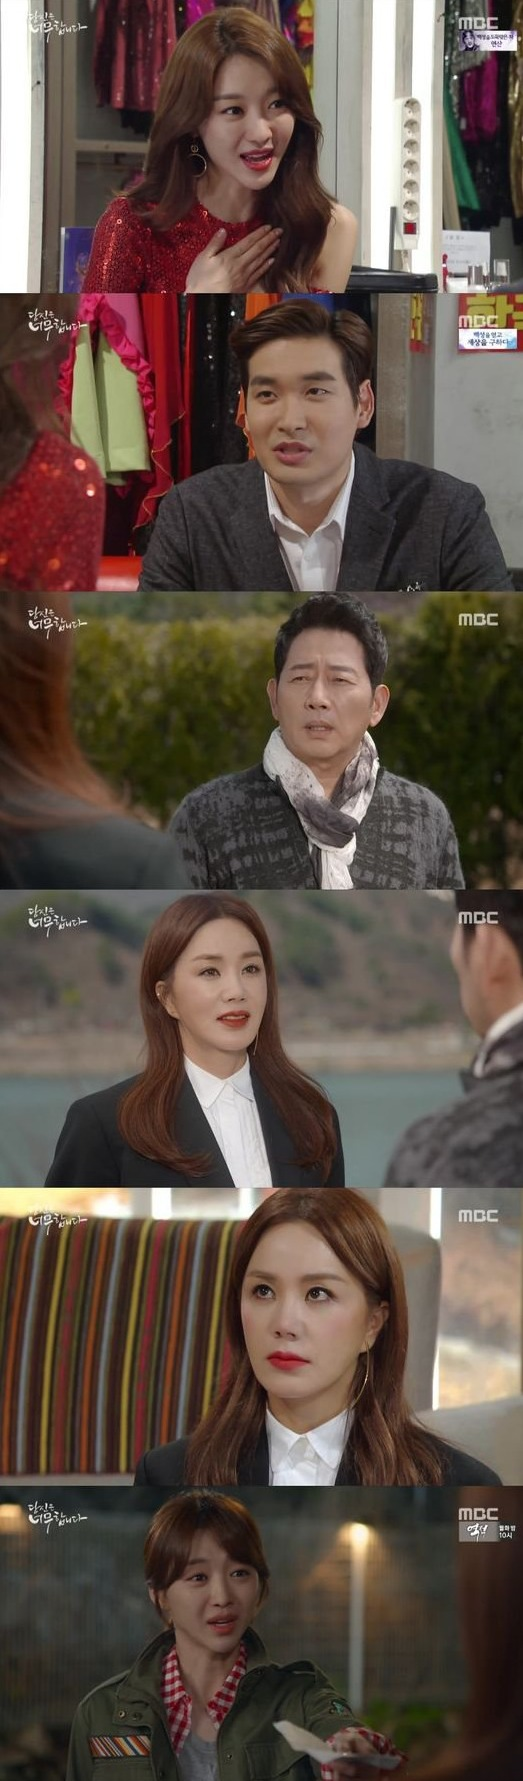 [Spoiler] Added episodes 13 and 14 captures for the Korean drama 'You're Too Much'